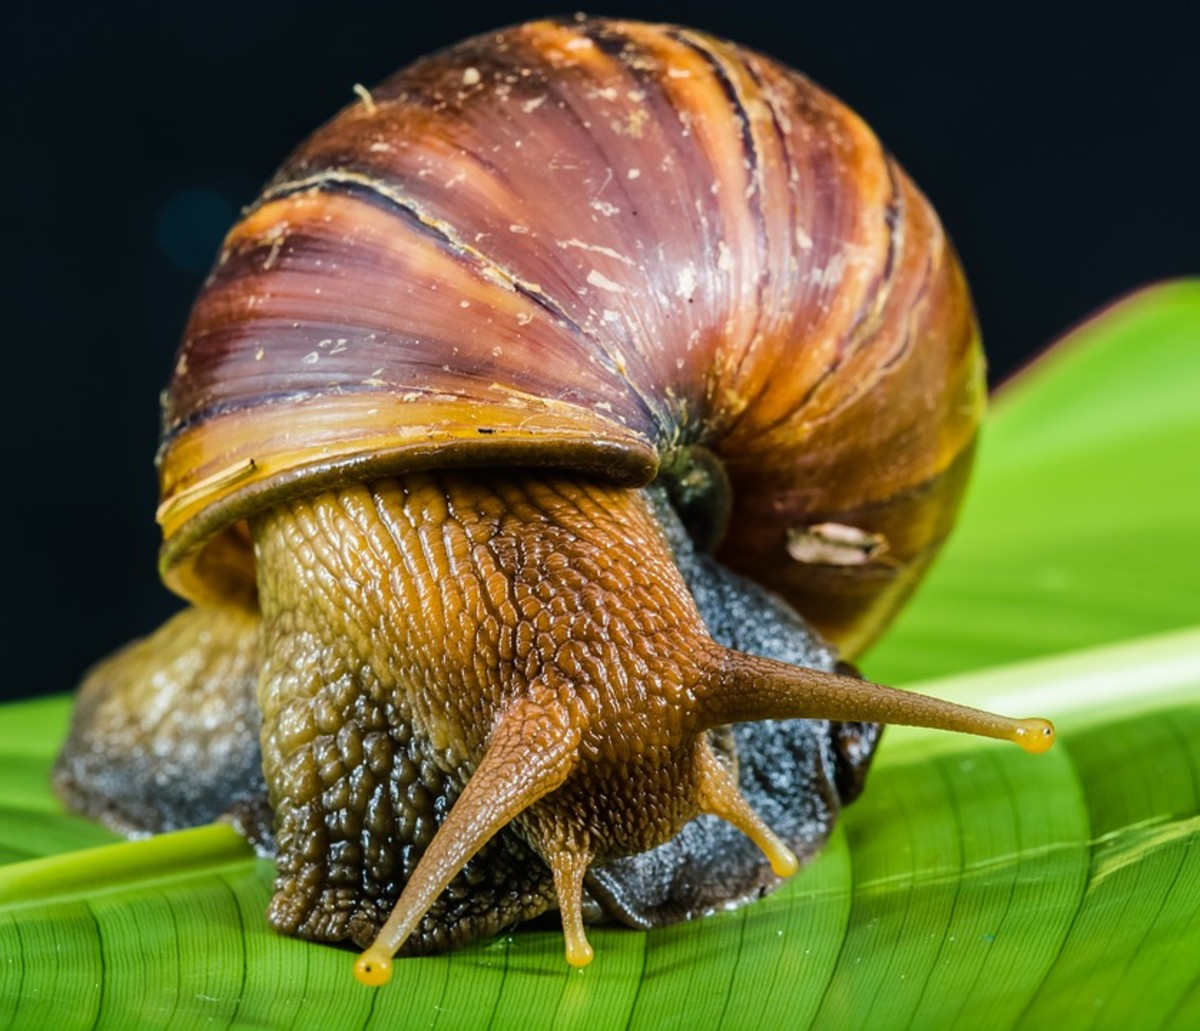 How Do Snails Mate: An Interesting Question with an Even More Interesting Answer